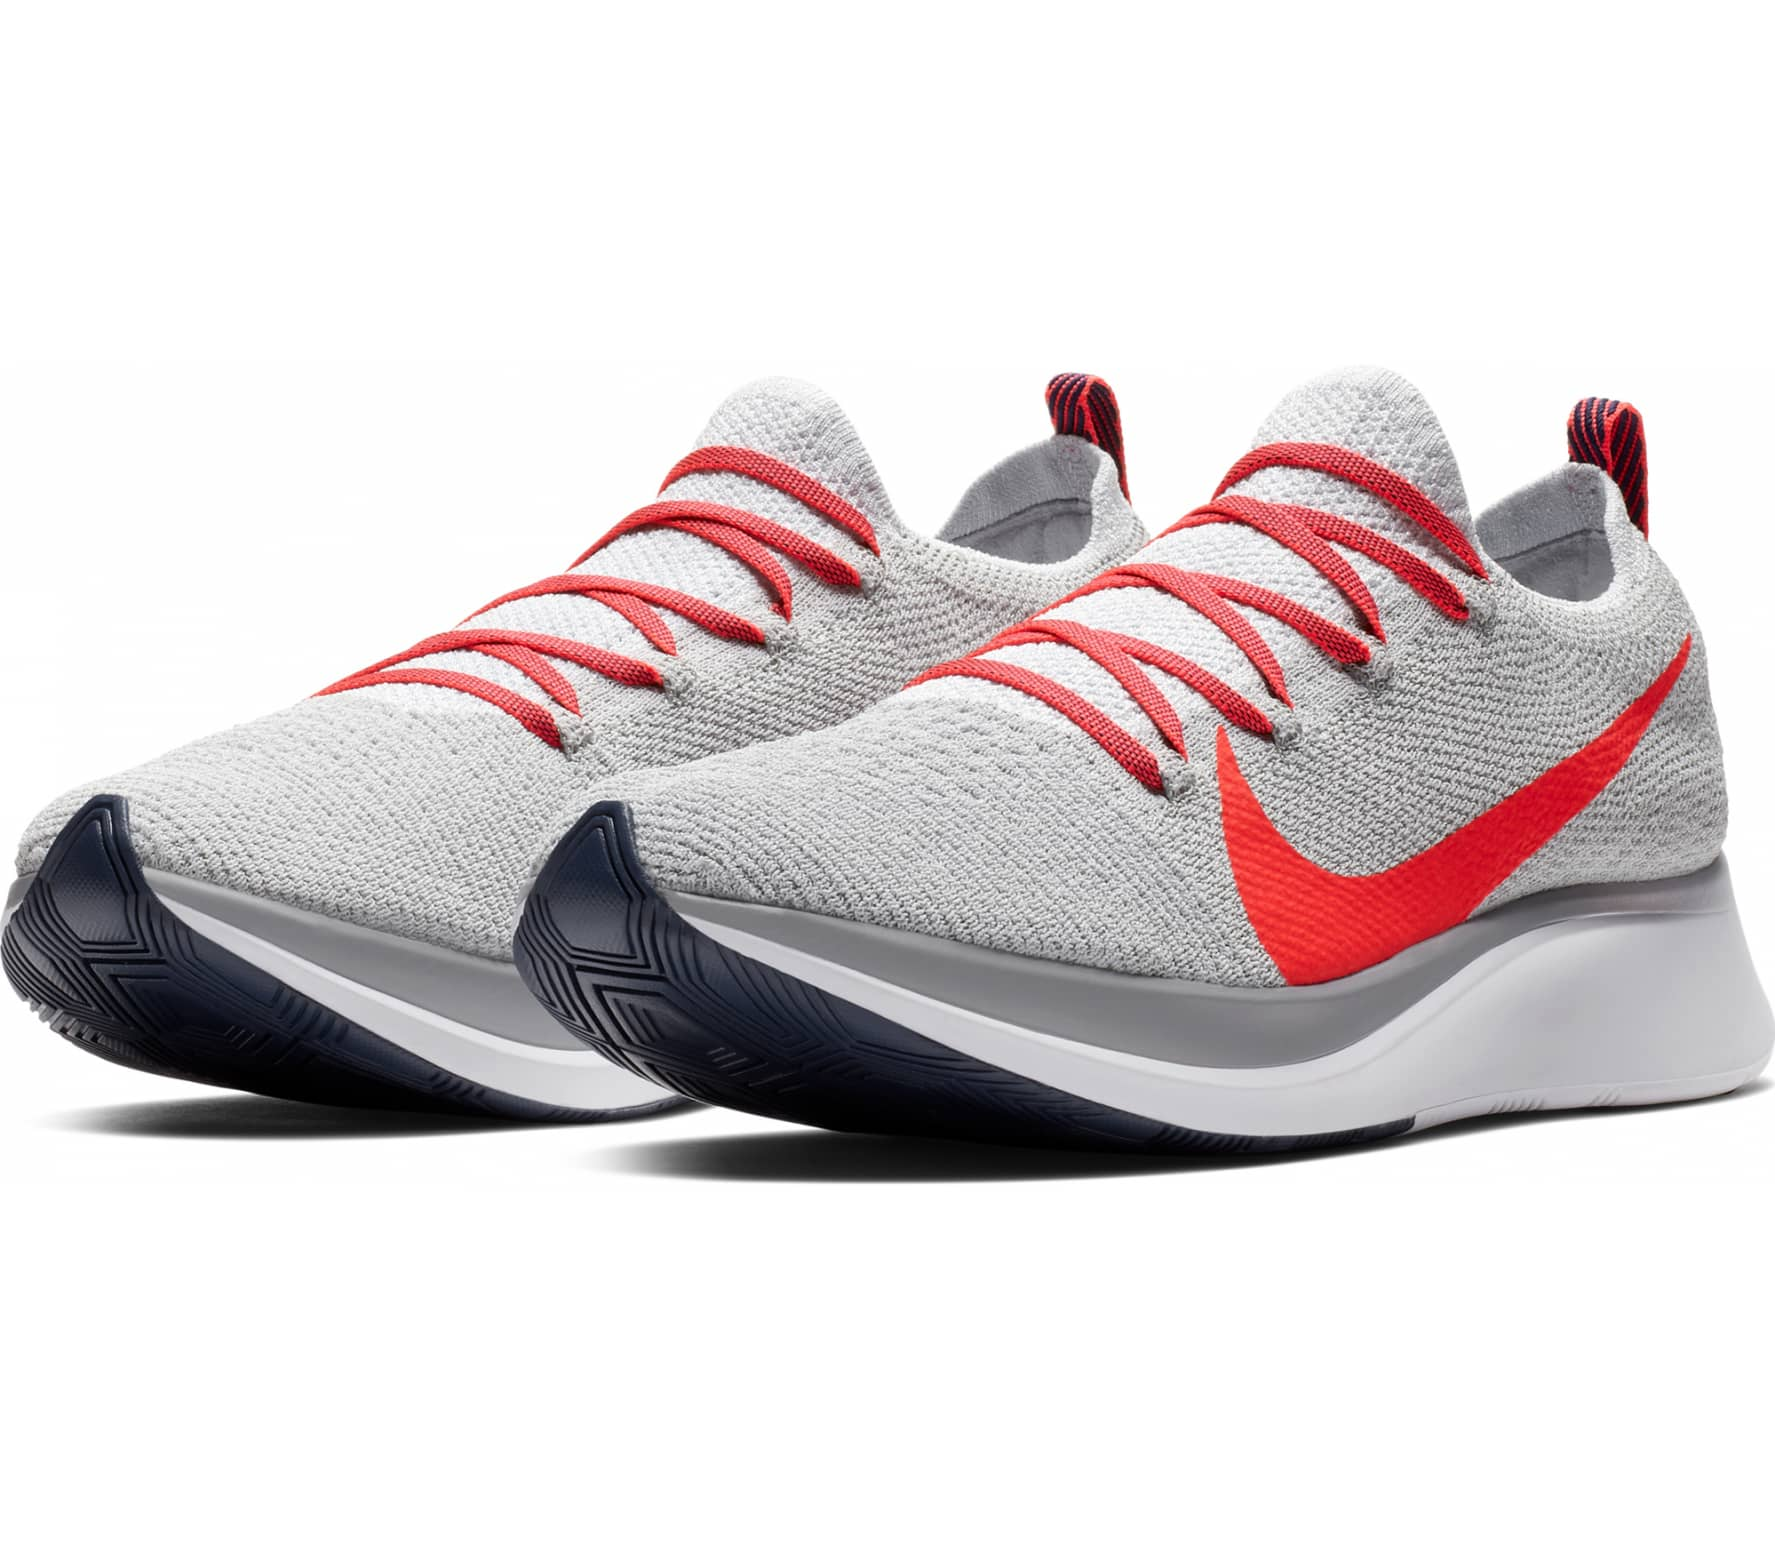 Chaussure Flyknit Nike Coursegris De Zoom Hommes Fly dxeEQBCWro